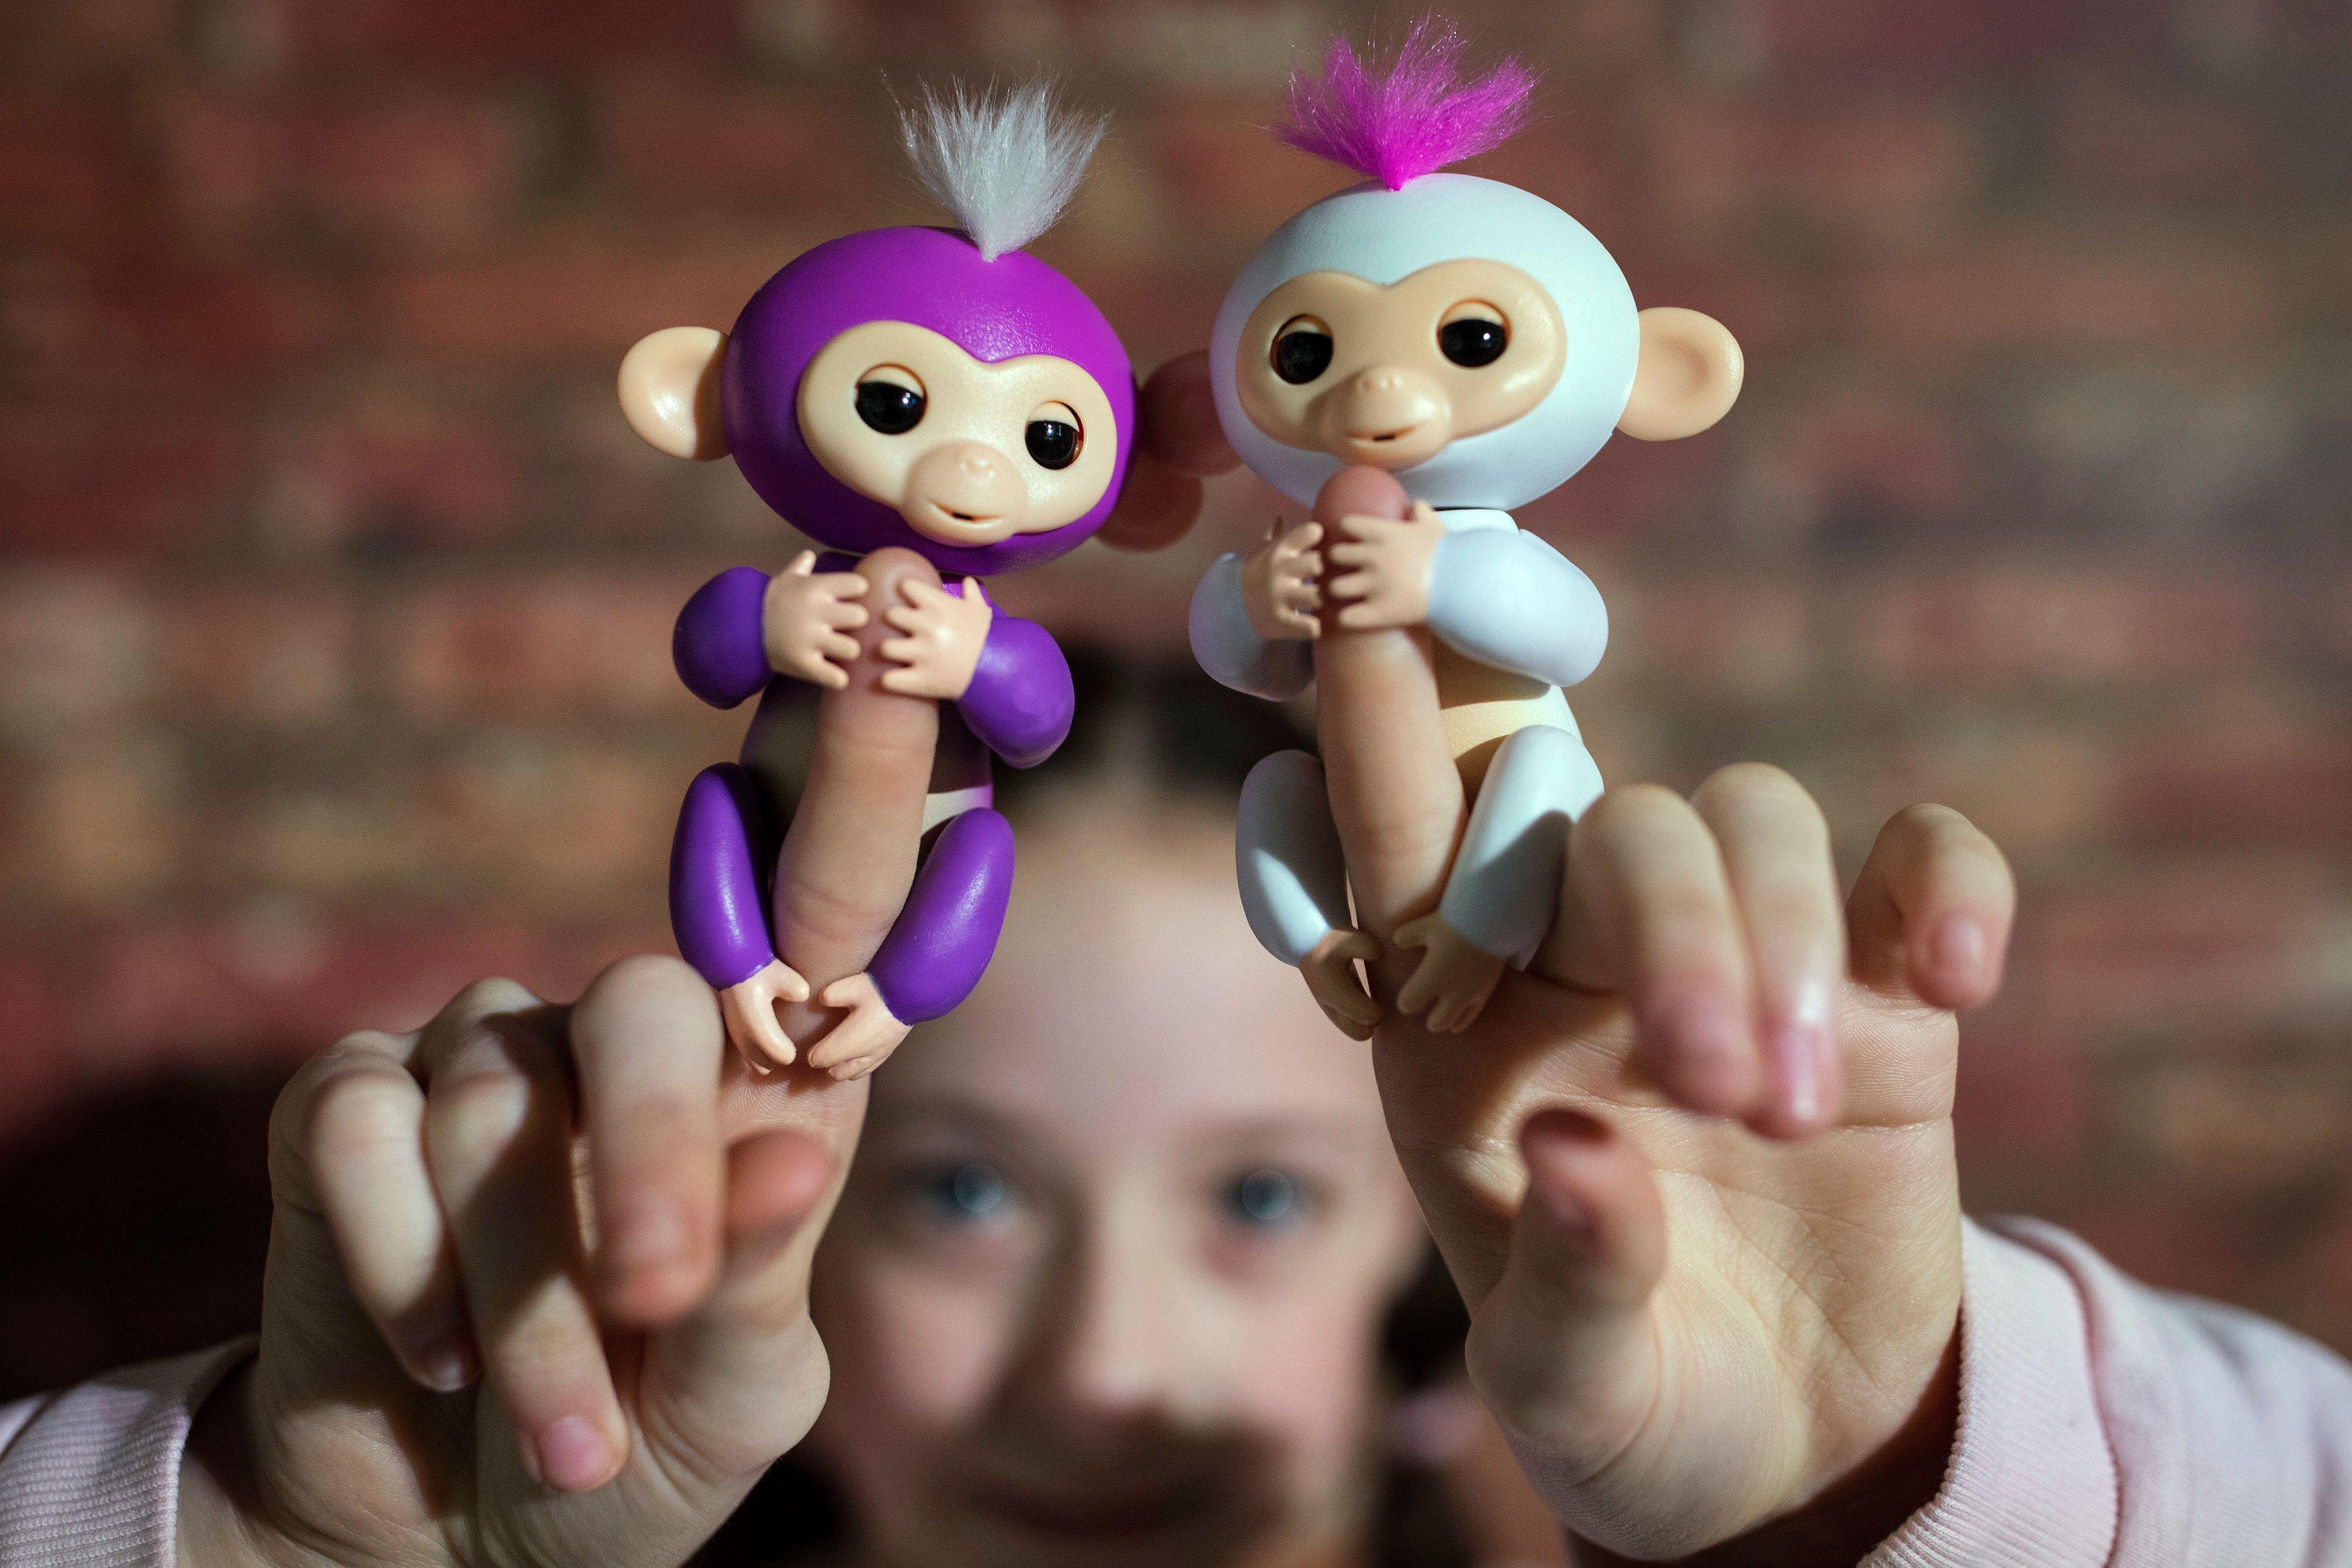 Beware Of Fake Fingerlings: Parents Warned About Too-Good-To-Be-True Toy